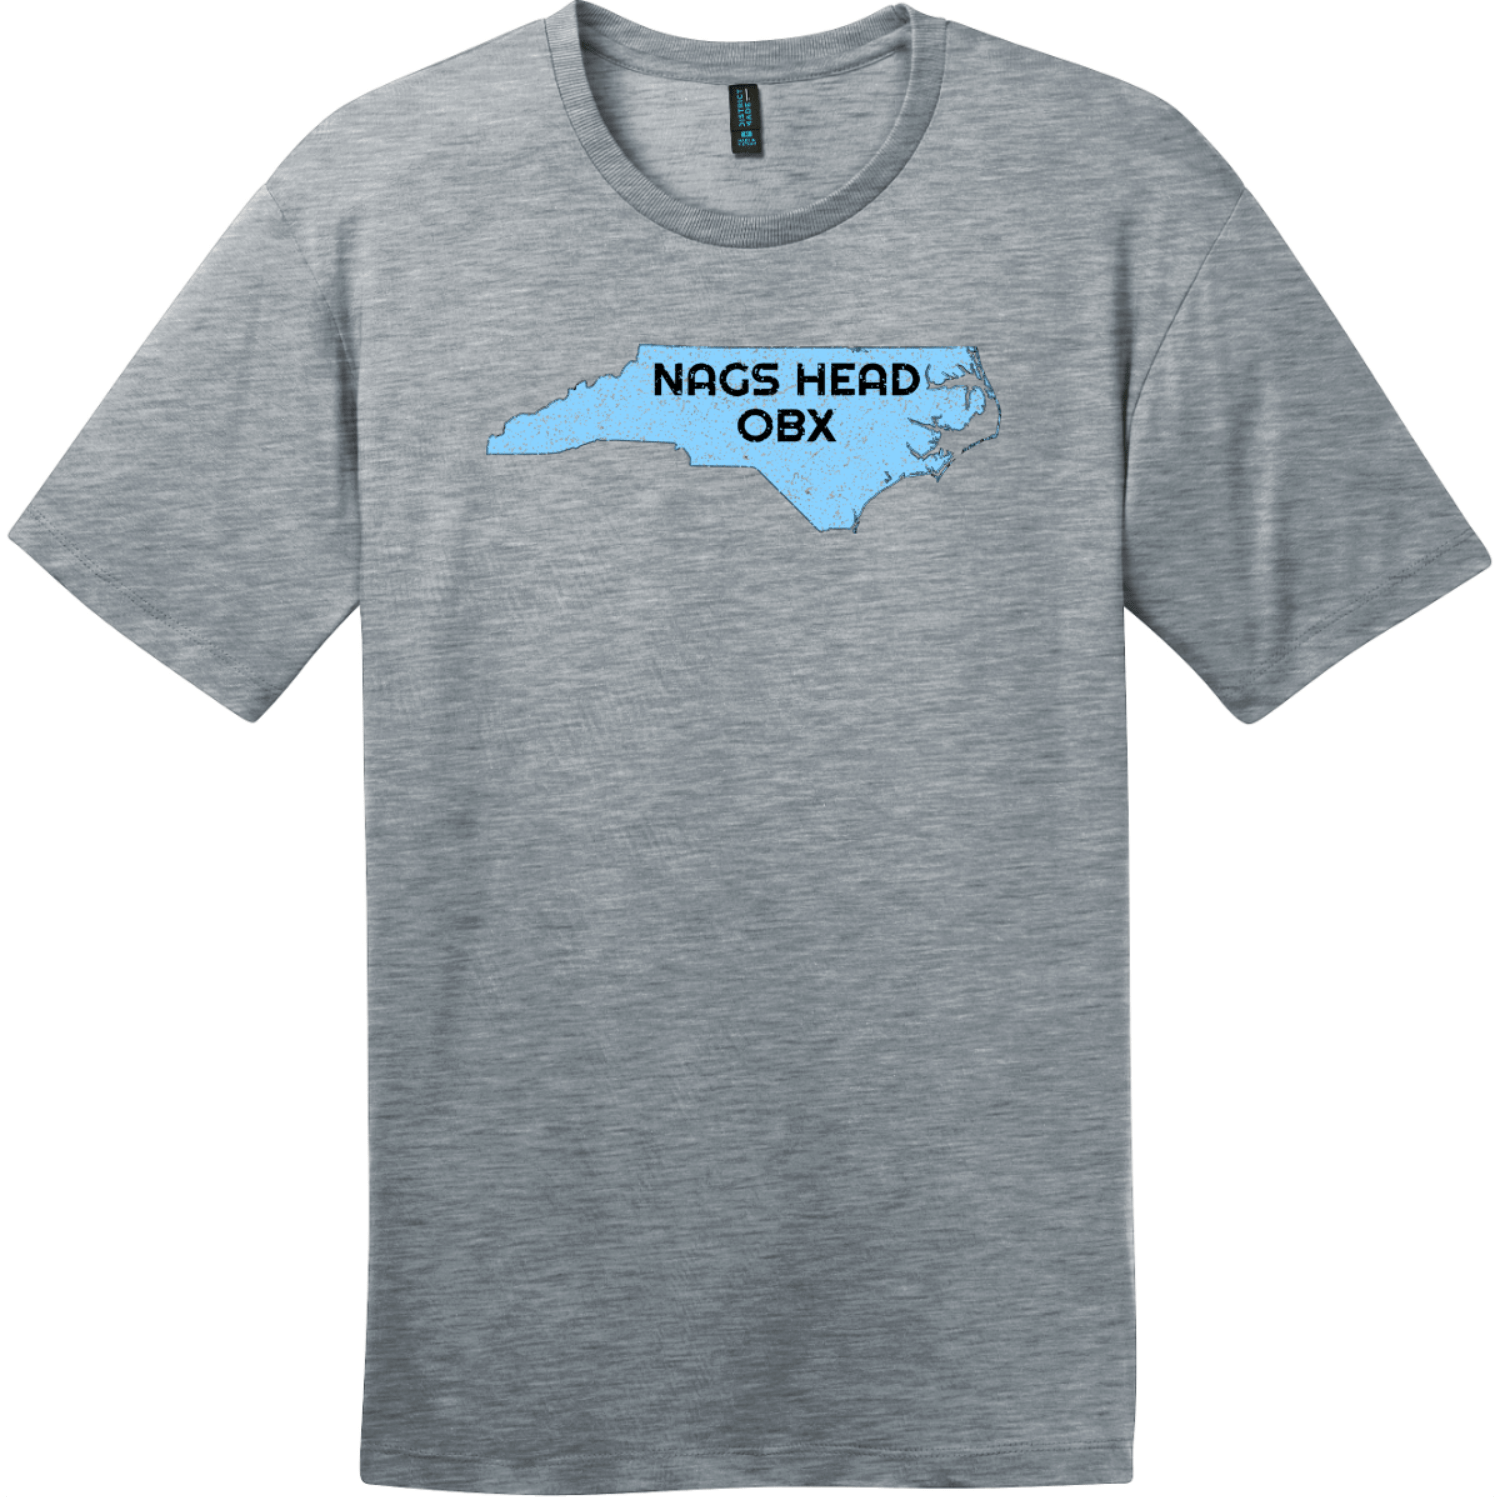 Nags Head OBX North Carolina State T-Shirt Heathered Steel District Perfect Weight Tee DT104